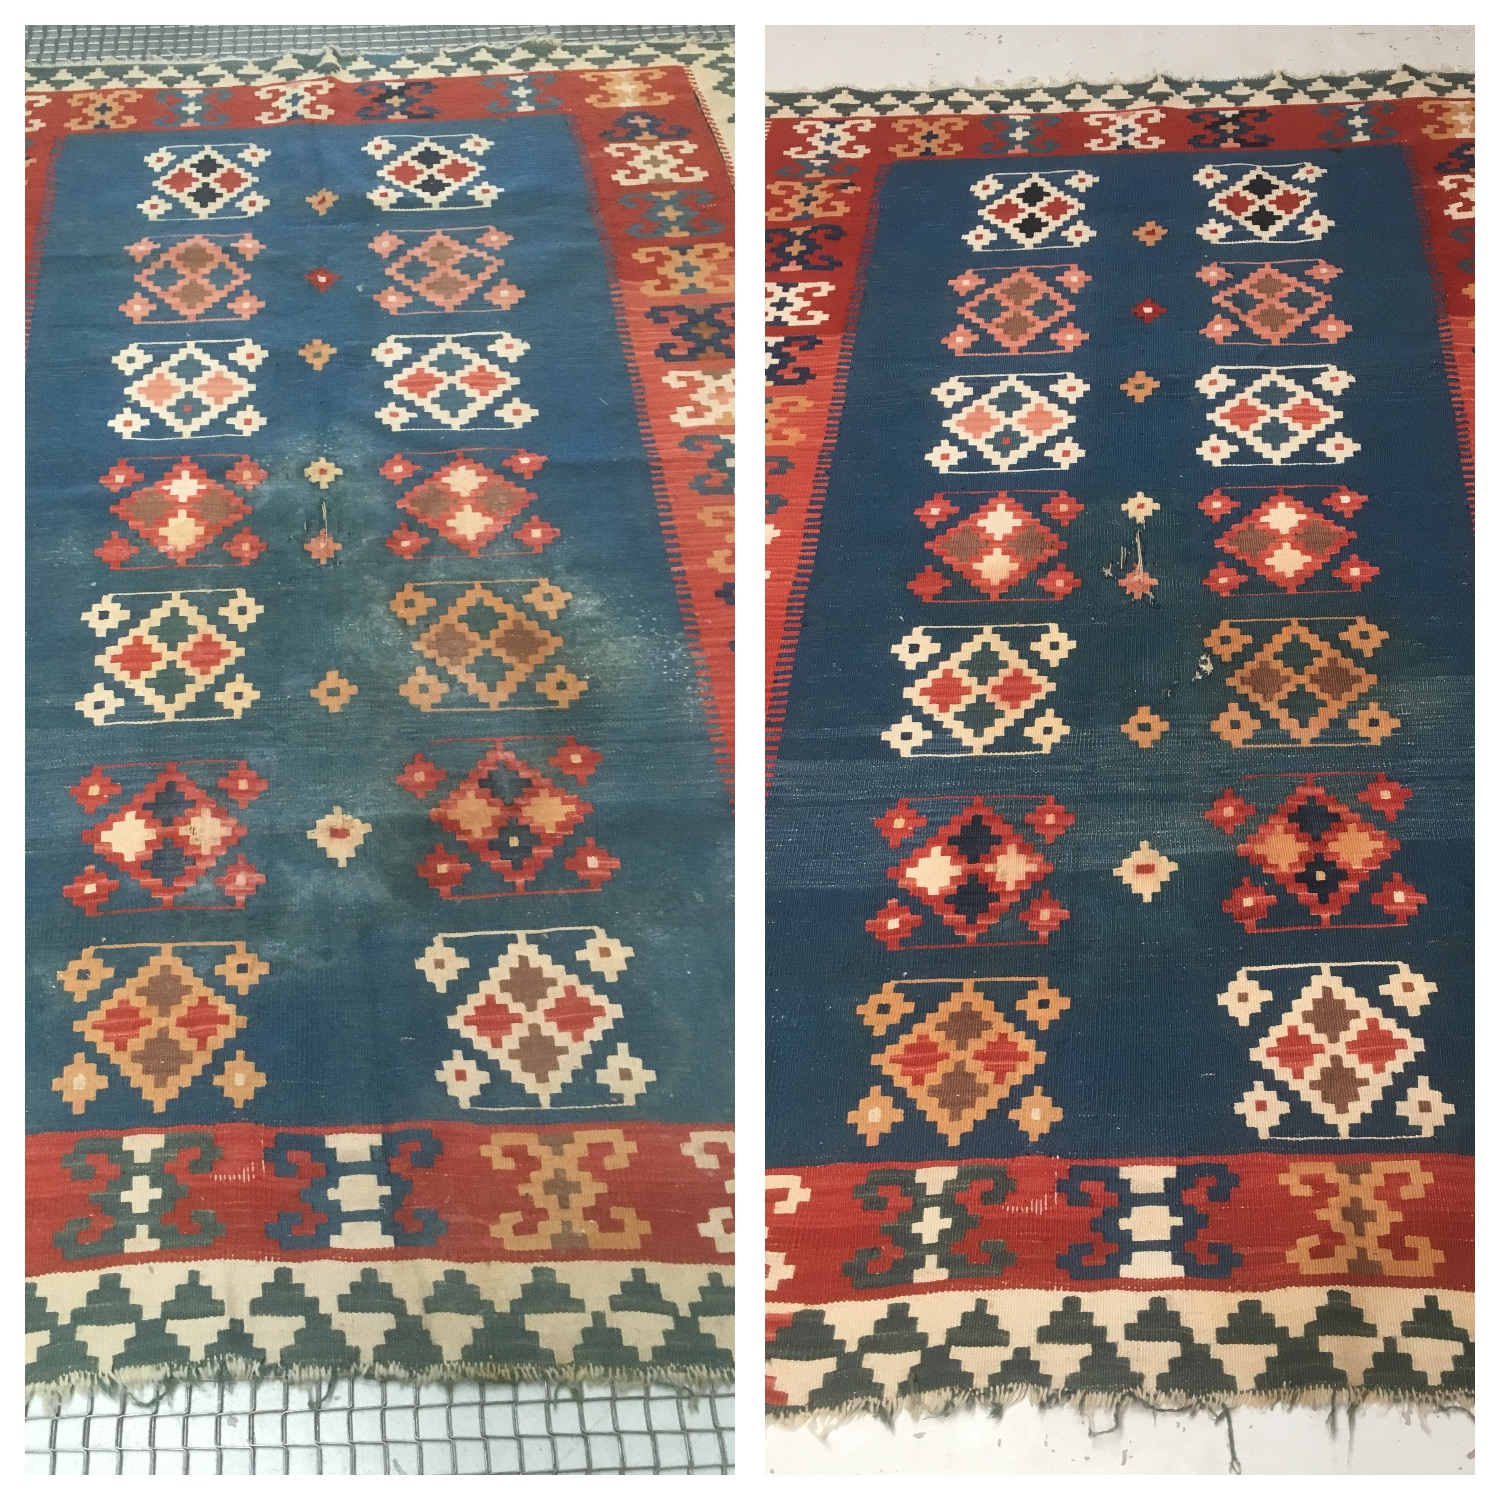 Cheshire Rug Cleaning Before & After Kilim Rug